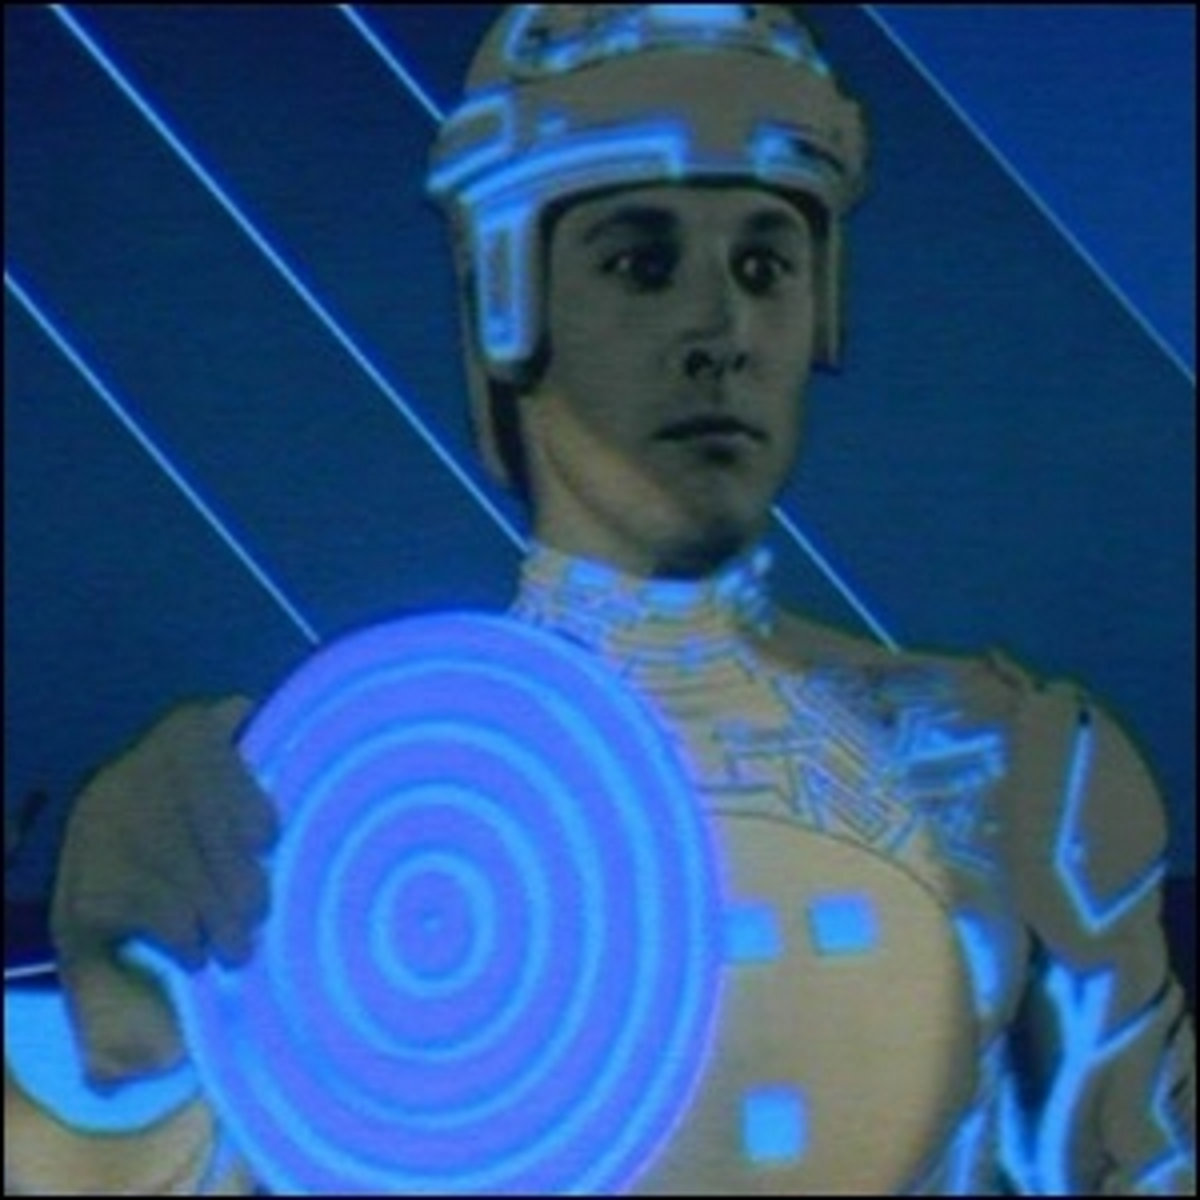 Actor Bruce Boxleitner portraying Tron in the original Tron movie.